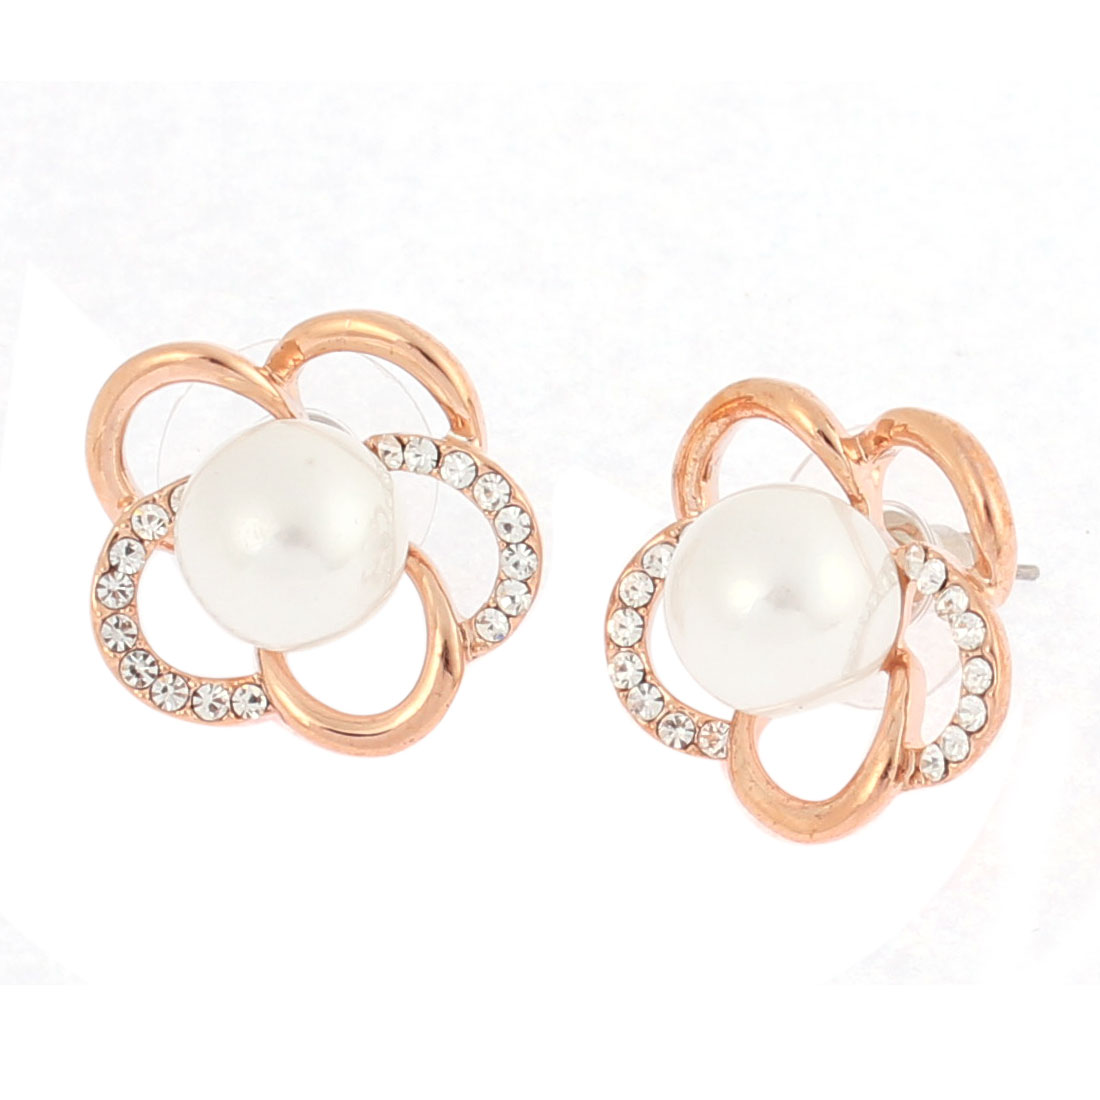 Lady Faux Rhinestone White Imitation Pearl Detail Hollow Flower Stud Earrings Ear Pins Nails Gold Tone Pair